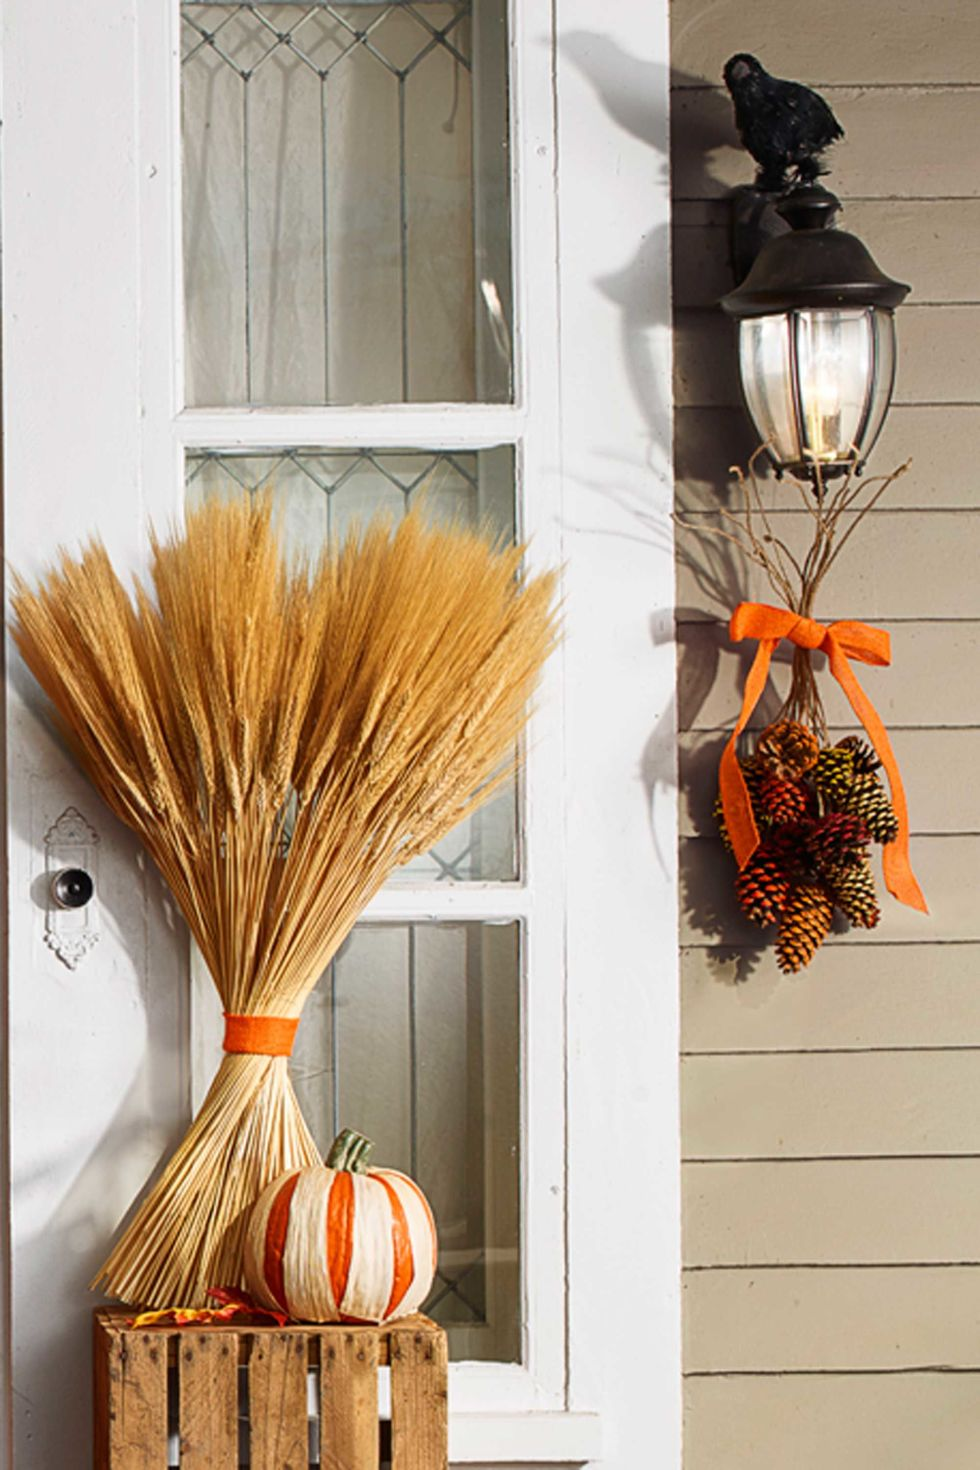 40 easy diy halloween decoration ideas homemade halloween decor projects - Halloween Ideas Decorations